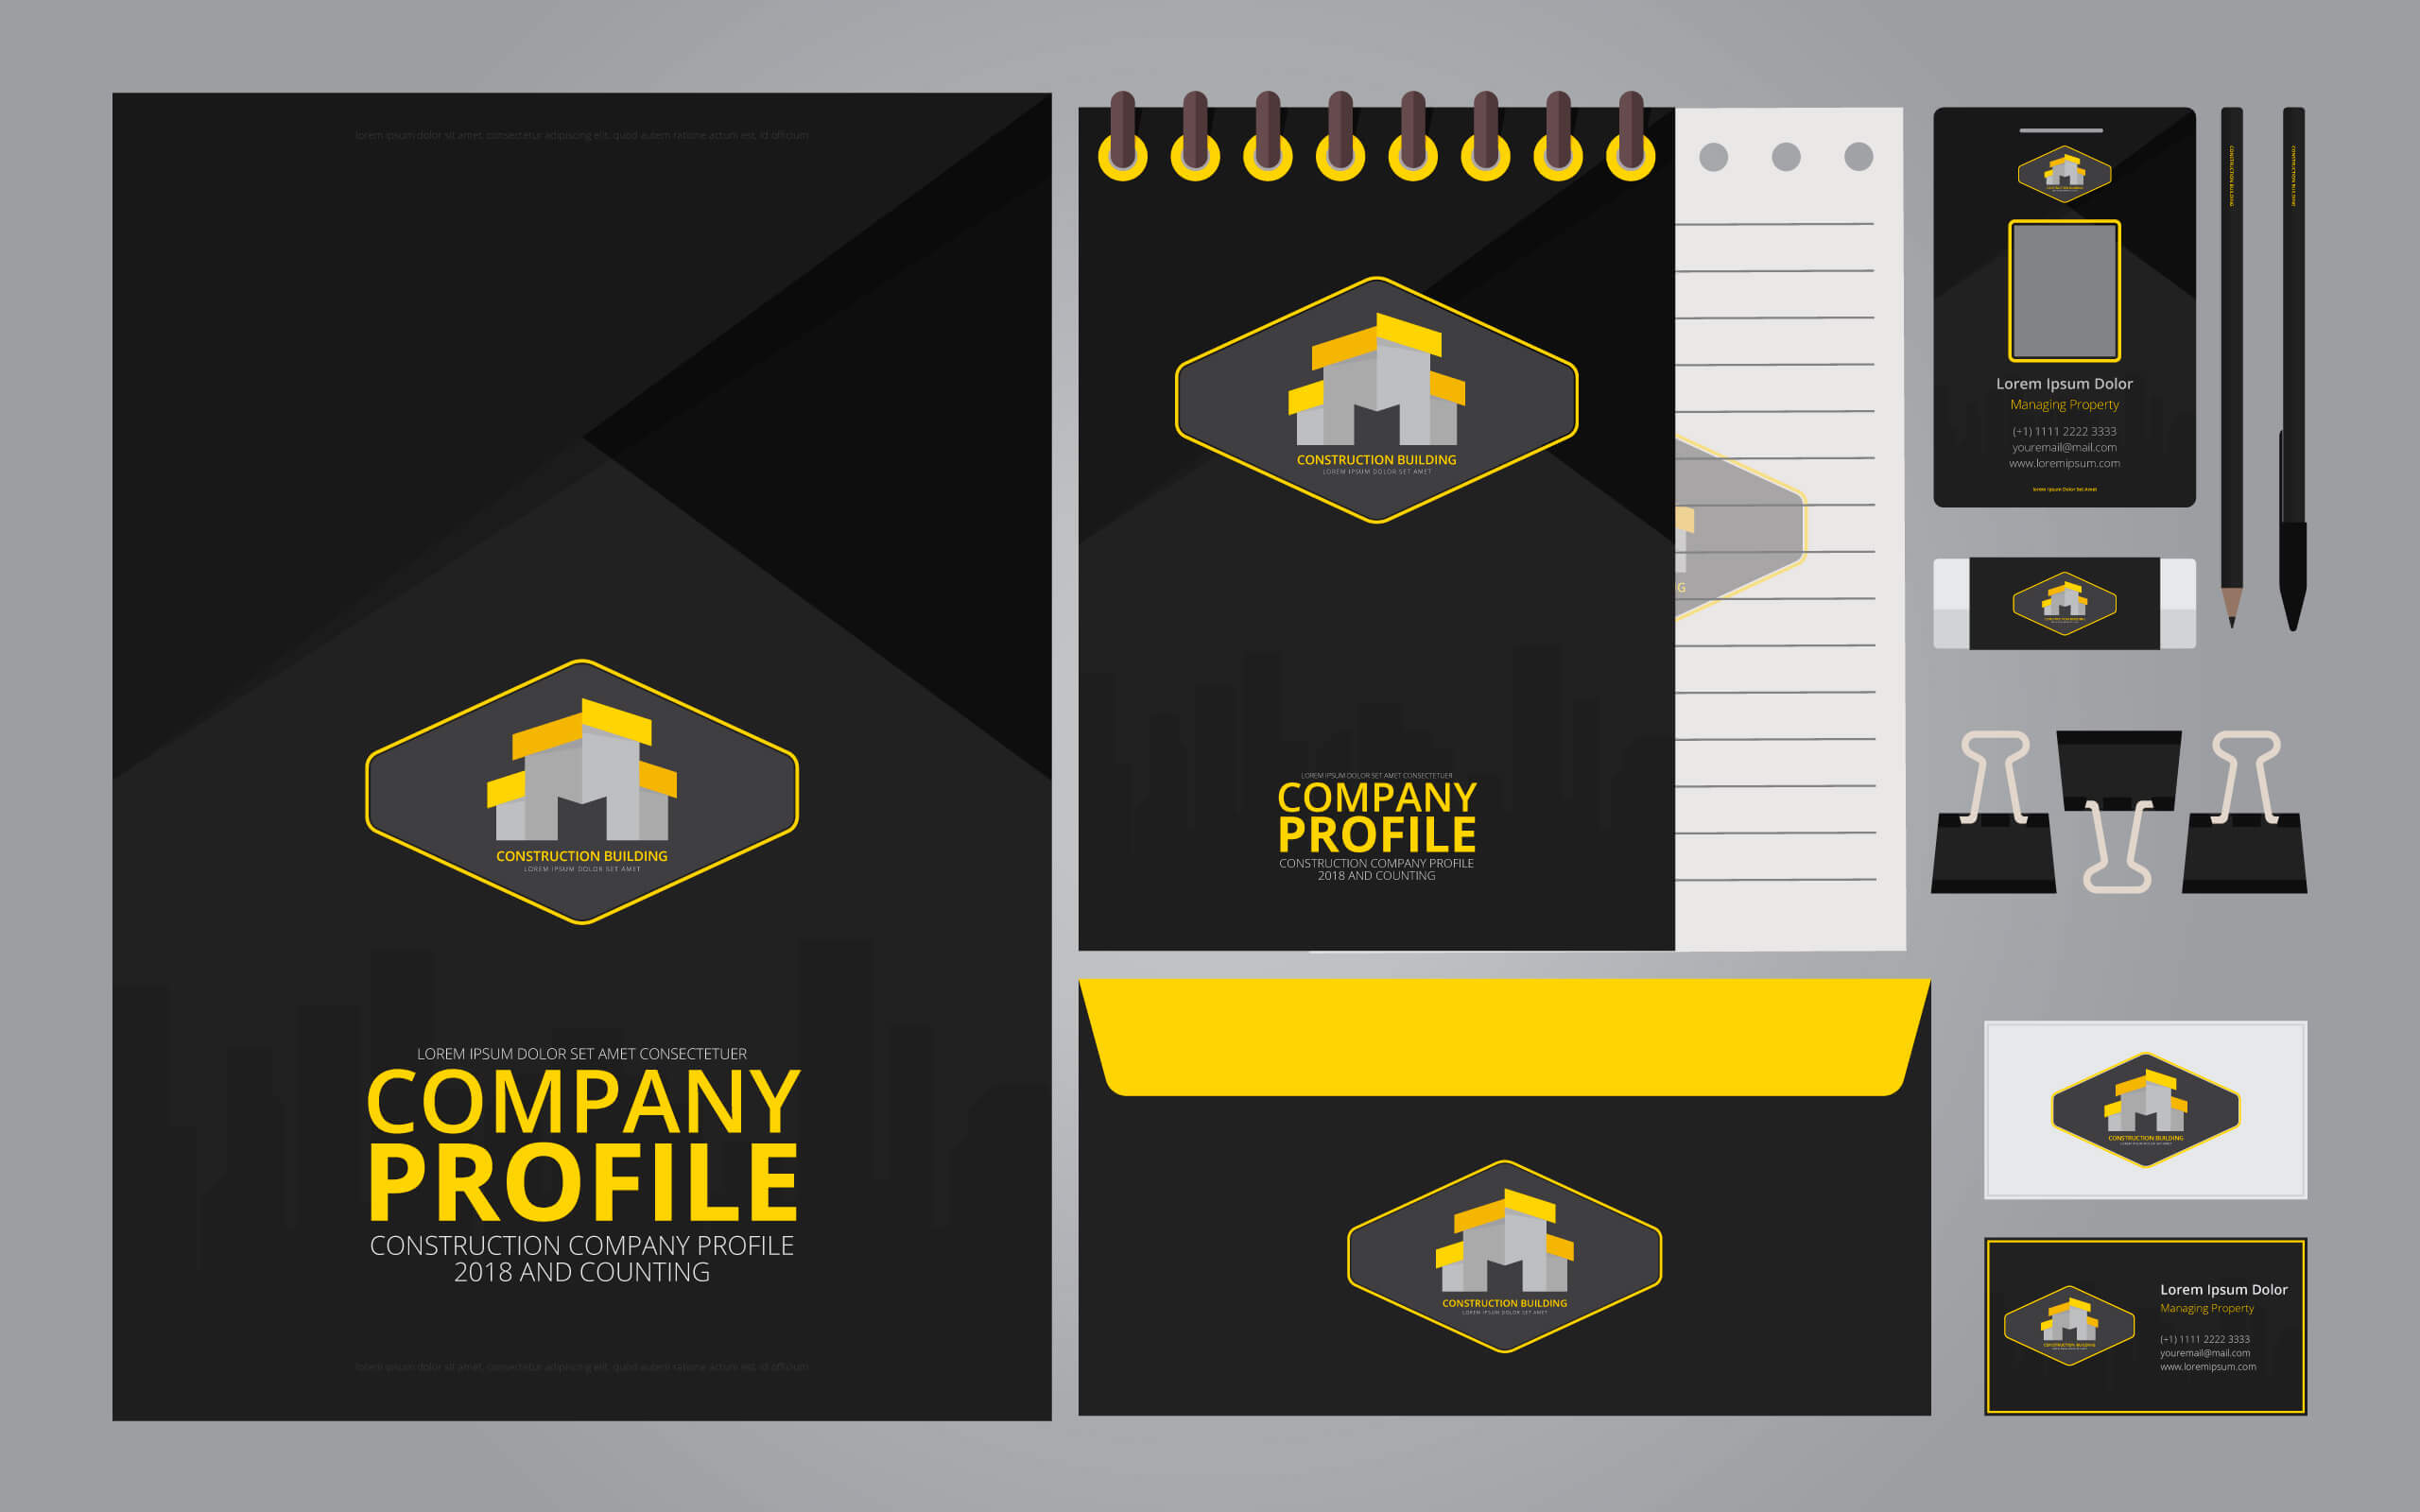 Company Profile Template, Free Company Profile Template With Business Profile Template Free Download